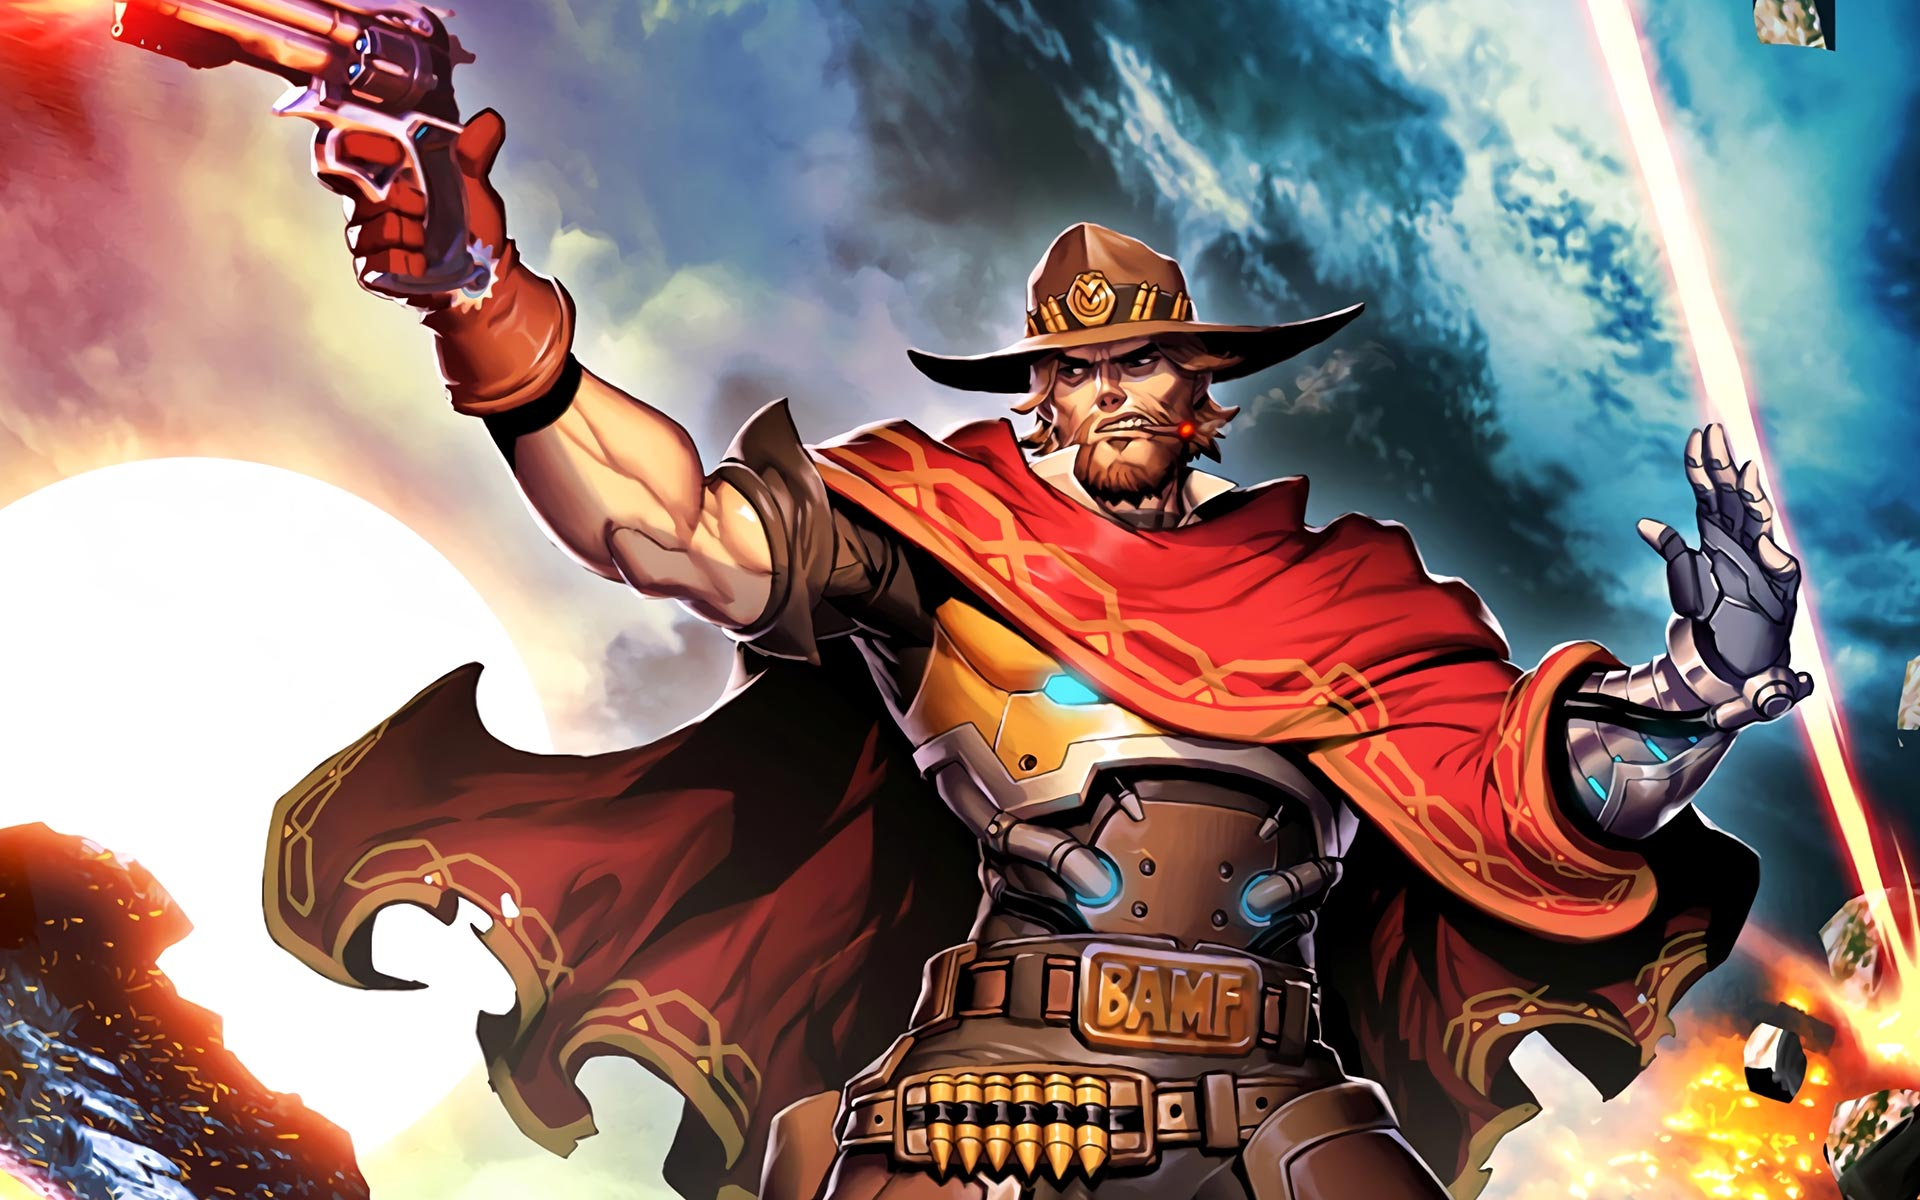 Overwatch Wallpaper Hd Overwatch Mccree Wallpaper 4k